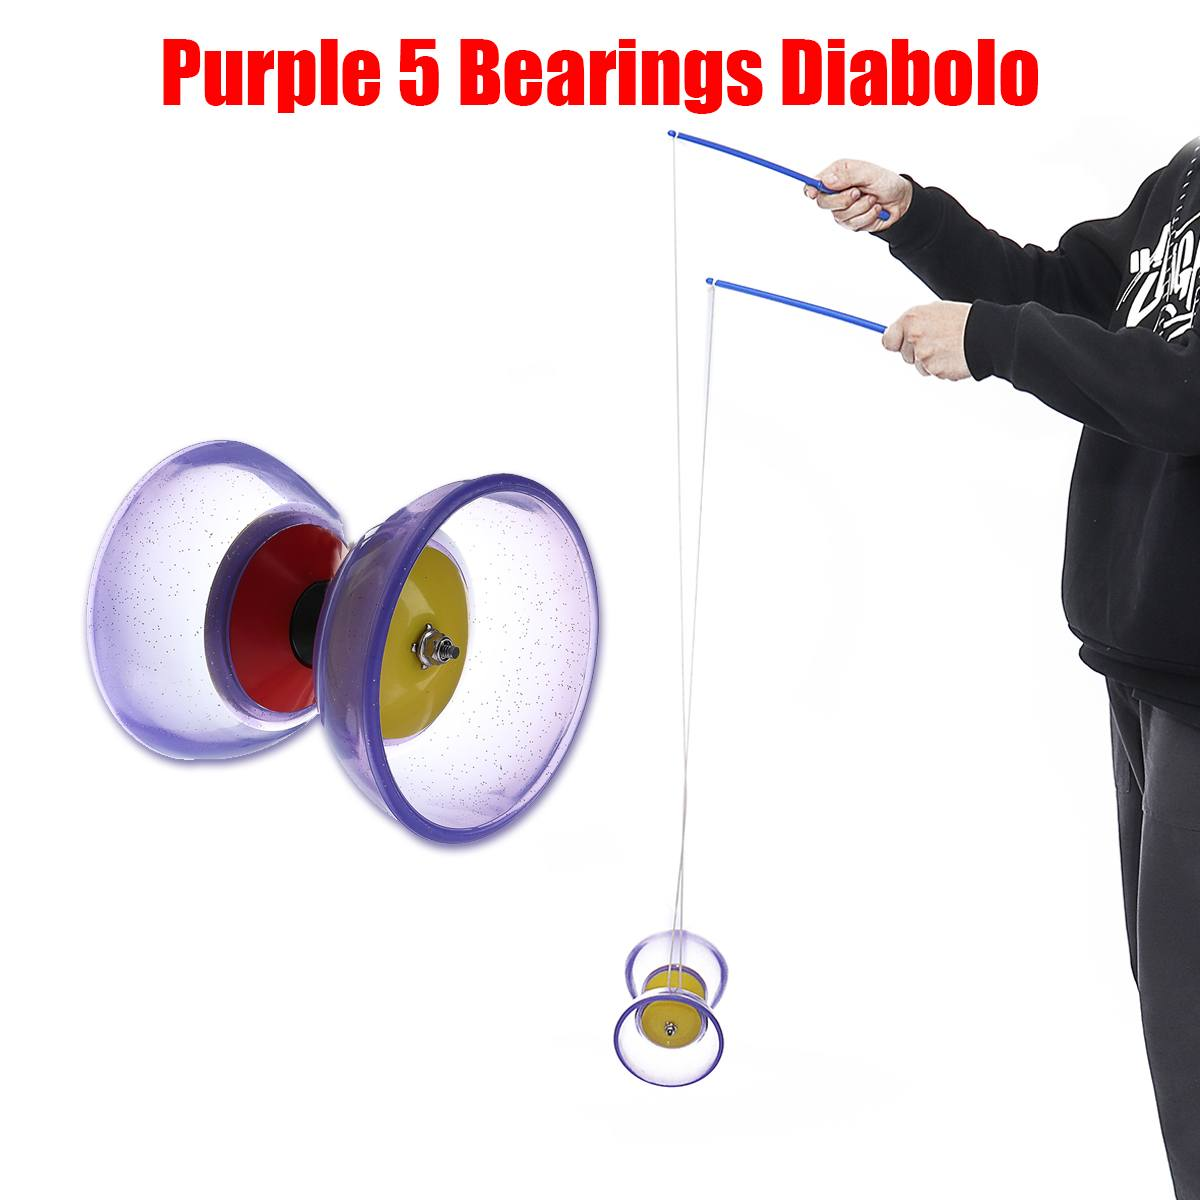 Plastic 5-Bearing Diabolo With Handsticks & String Juggling Toy for Professionals Beginners Children Adult YOYO Set Classic Toy